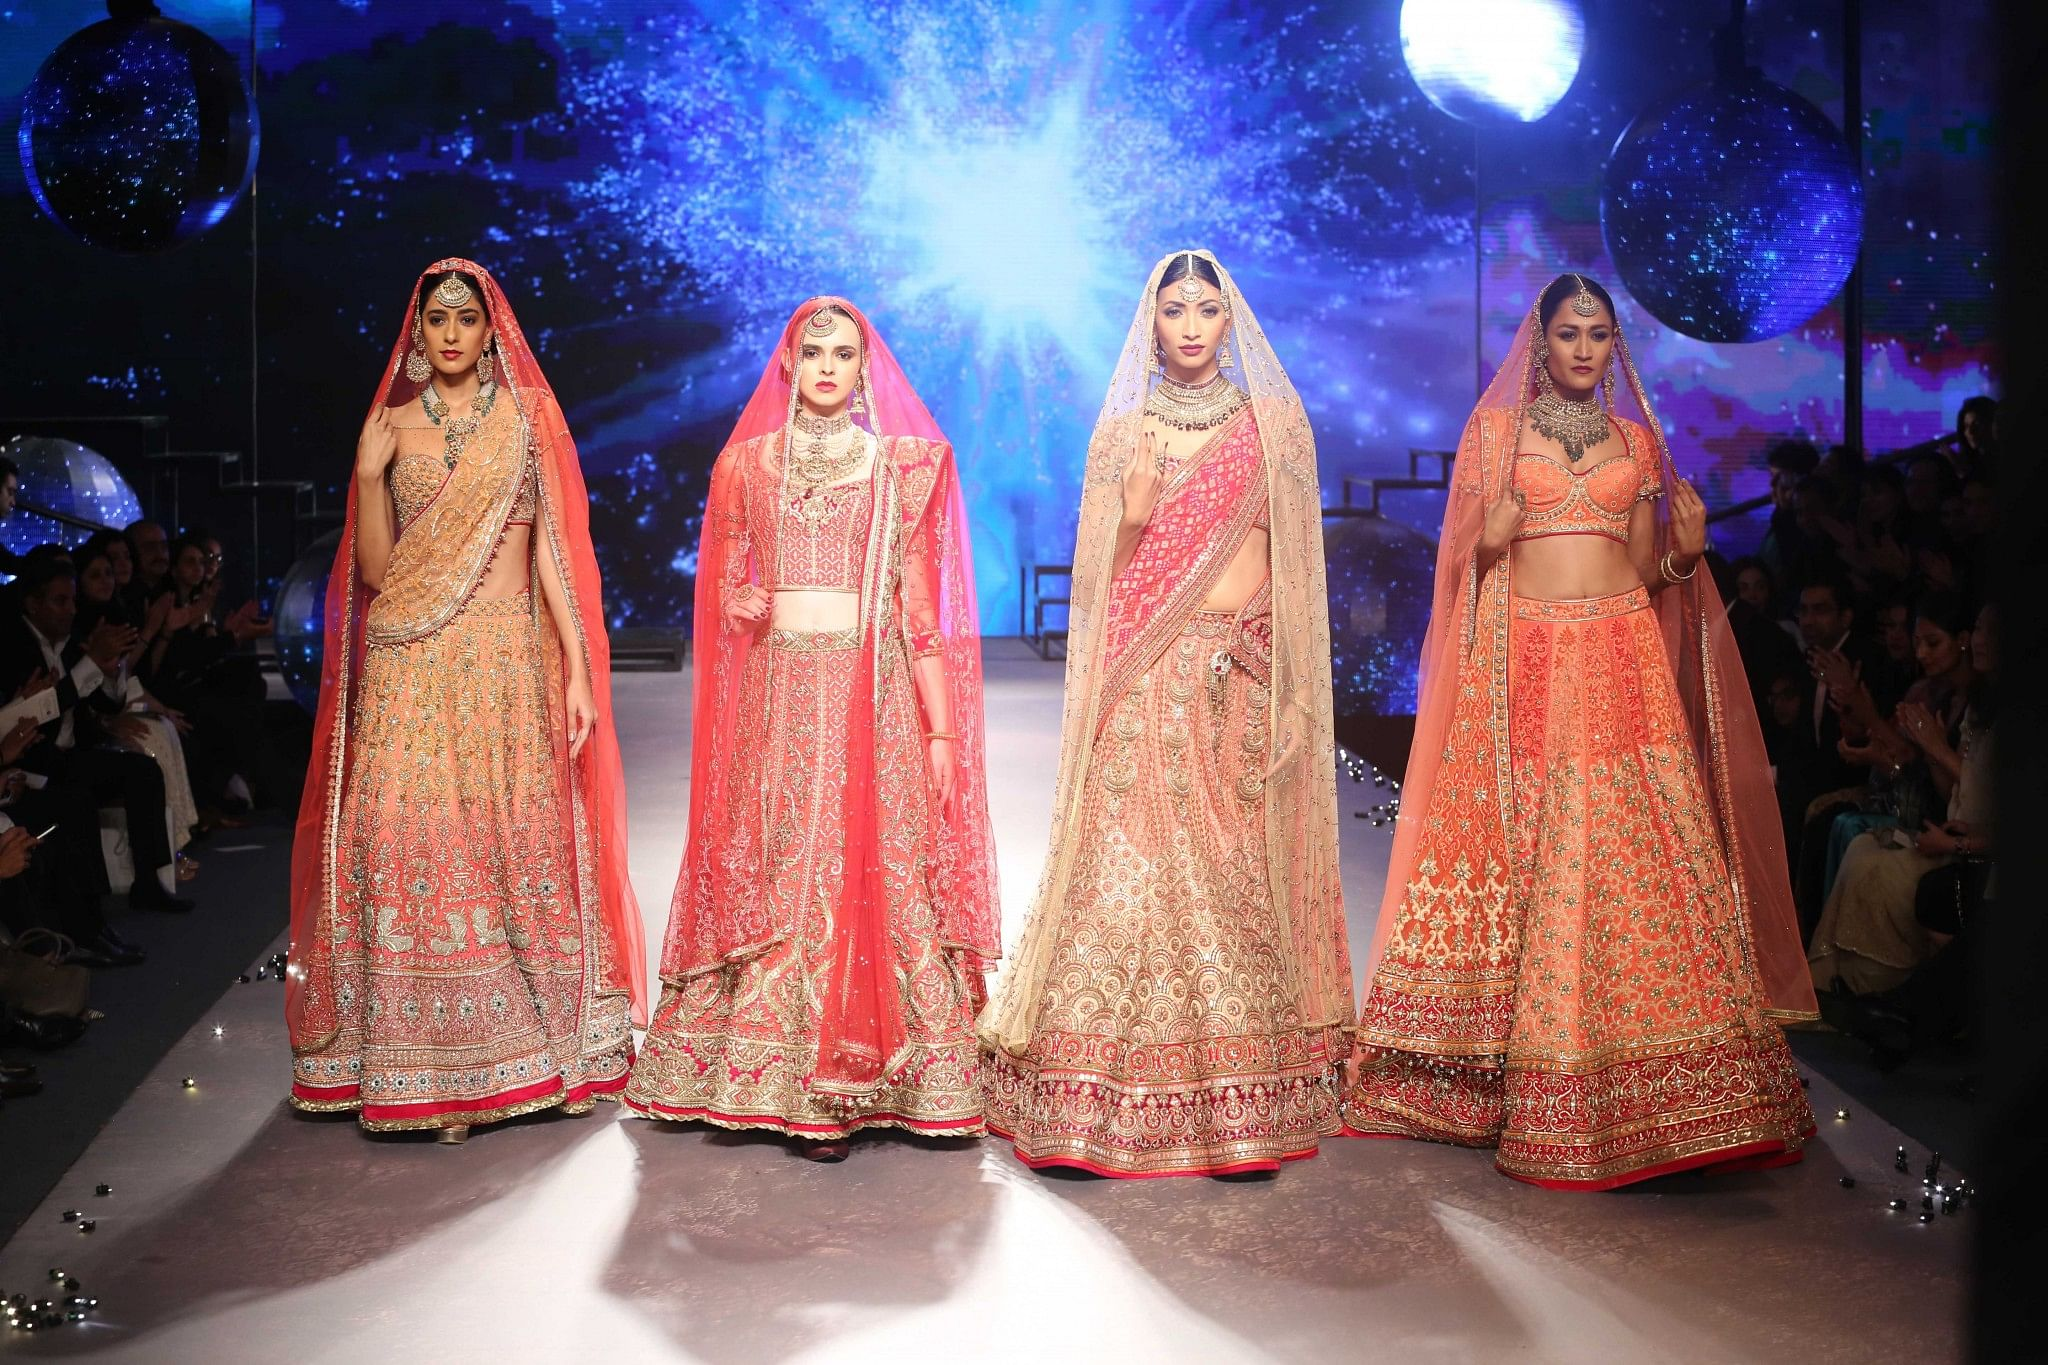 Fashion guru Tarun Tahiliani is well-known for his bridal wear and is a self-confessed aficionado of the Kanjivaram and Banarasi weaves. (Courtesy Tarun Tahiliani)